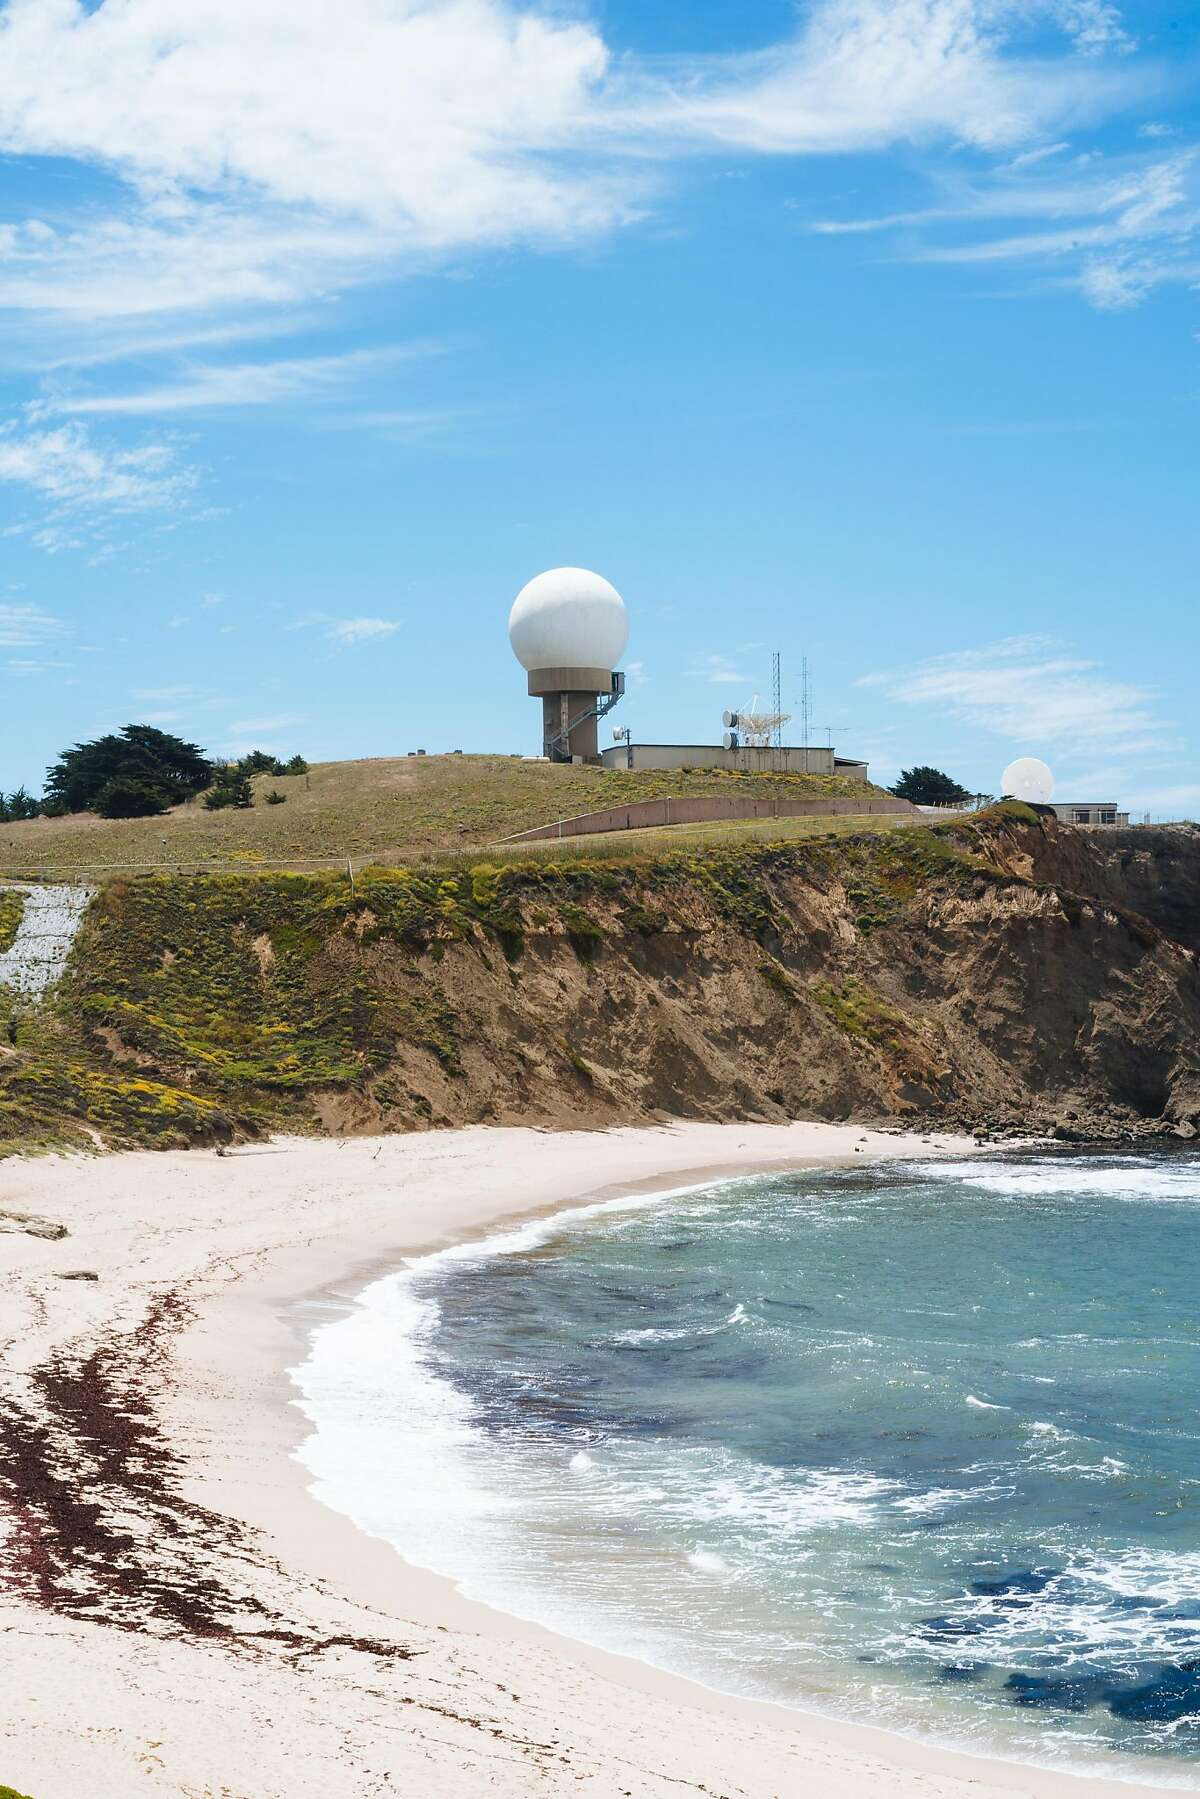 Ross�s Cove on Pillar Point photographed in Half Moon Bay, Calif., on Friday, July 6, 2018.